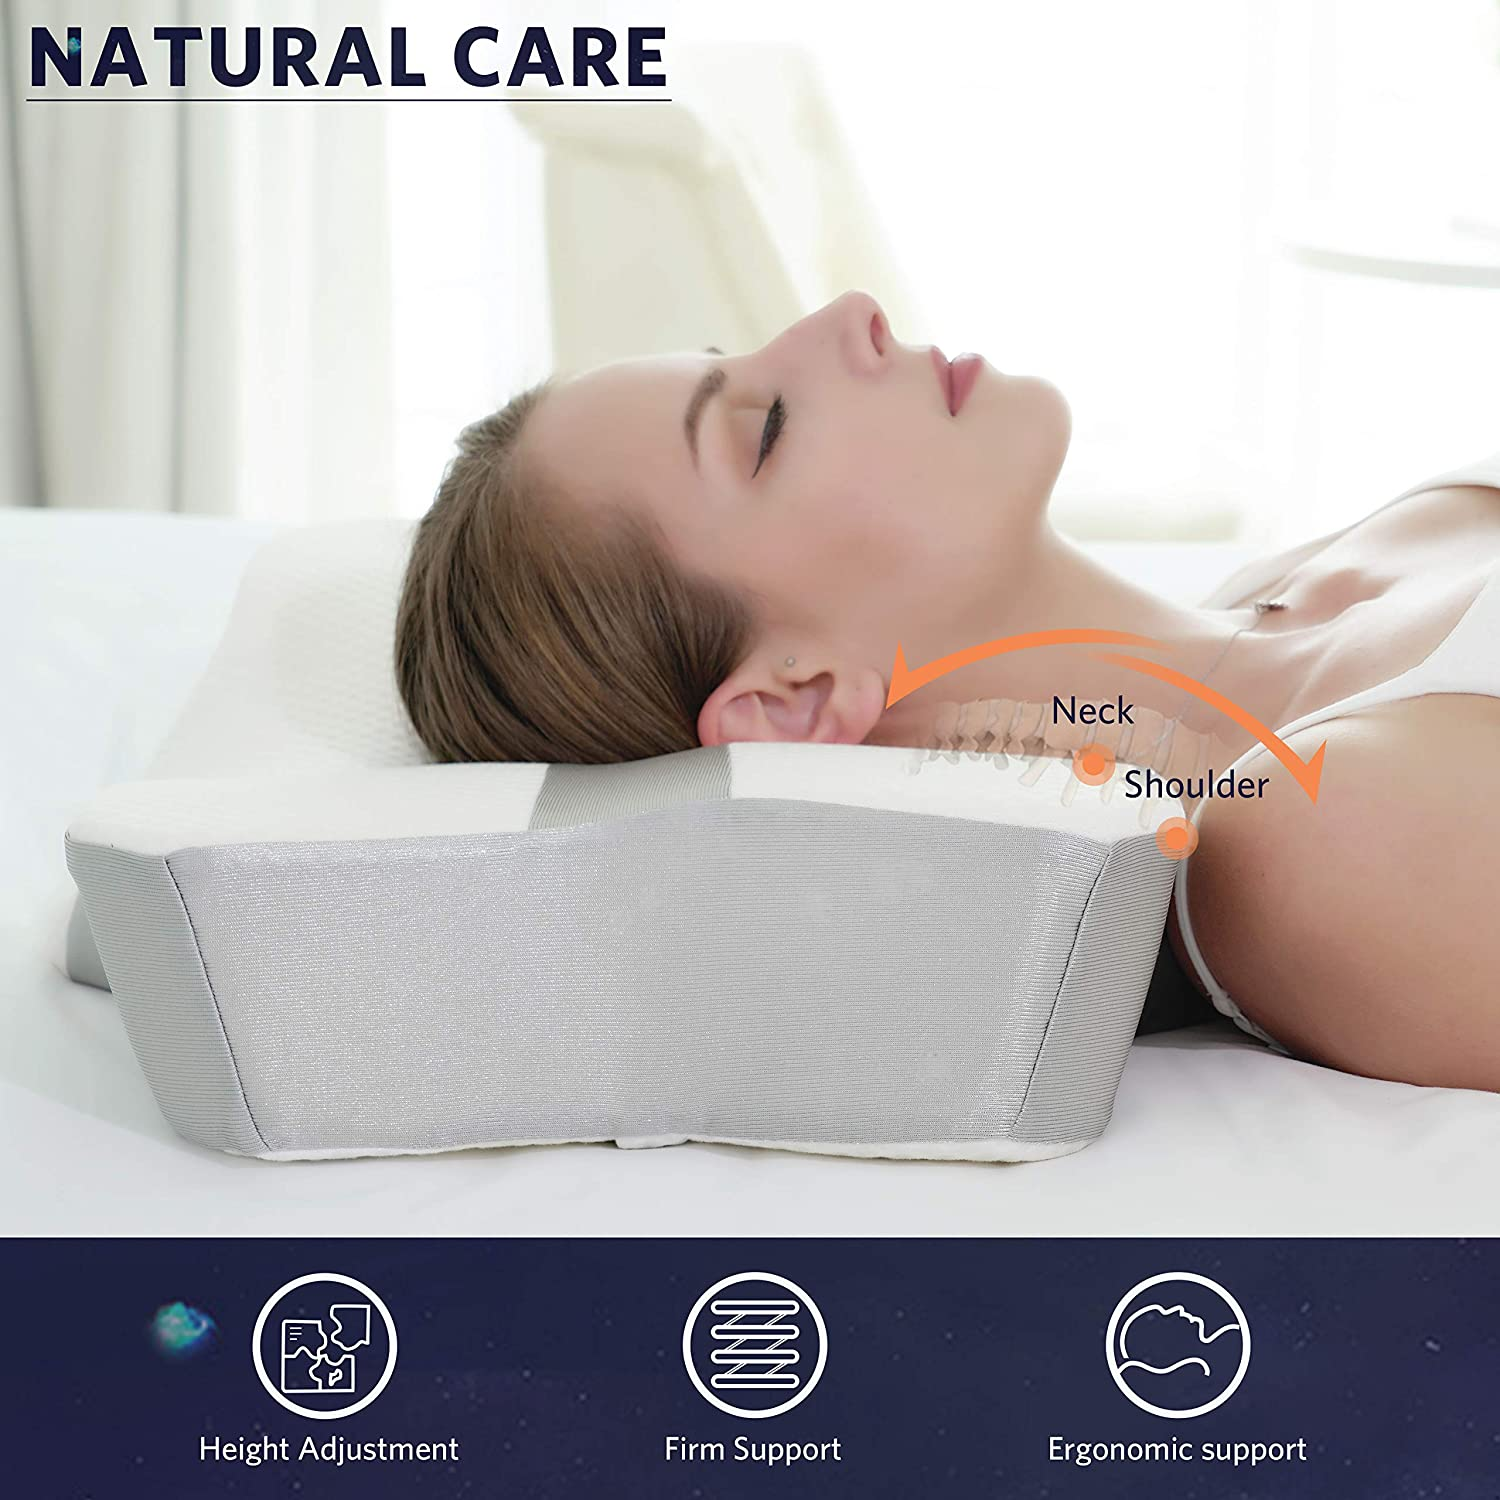 YARKOR Contour Memory Foam Pillow, Orthopedic Pillows for Neck Pain, Ergonomic Cervical Pillow for Side Sleepers, Back and Stomach Sleep (with Machine Washable Pillowcase): Home & Kitchen